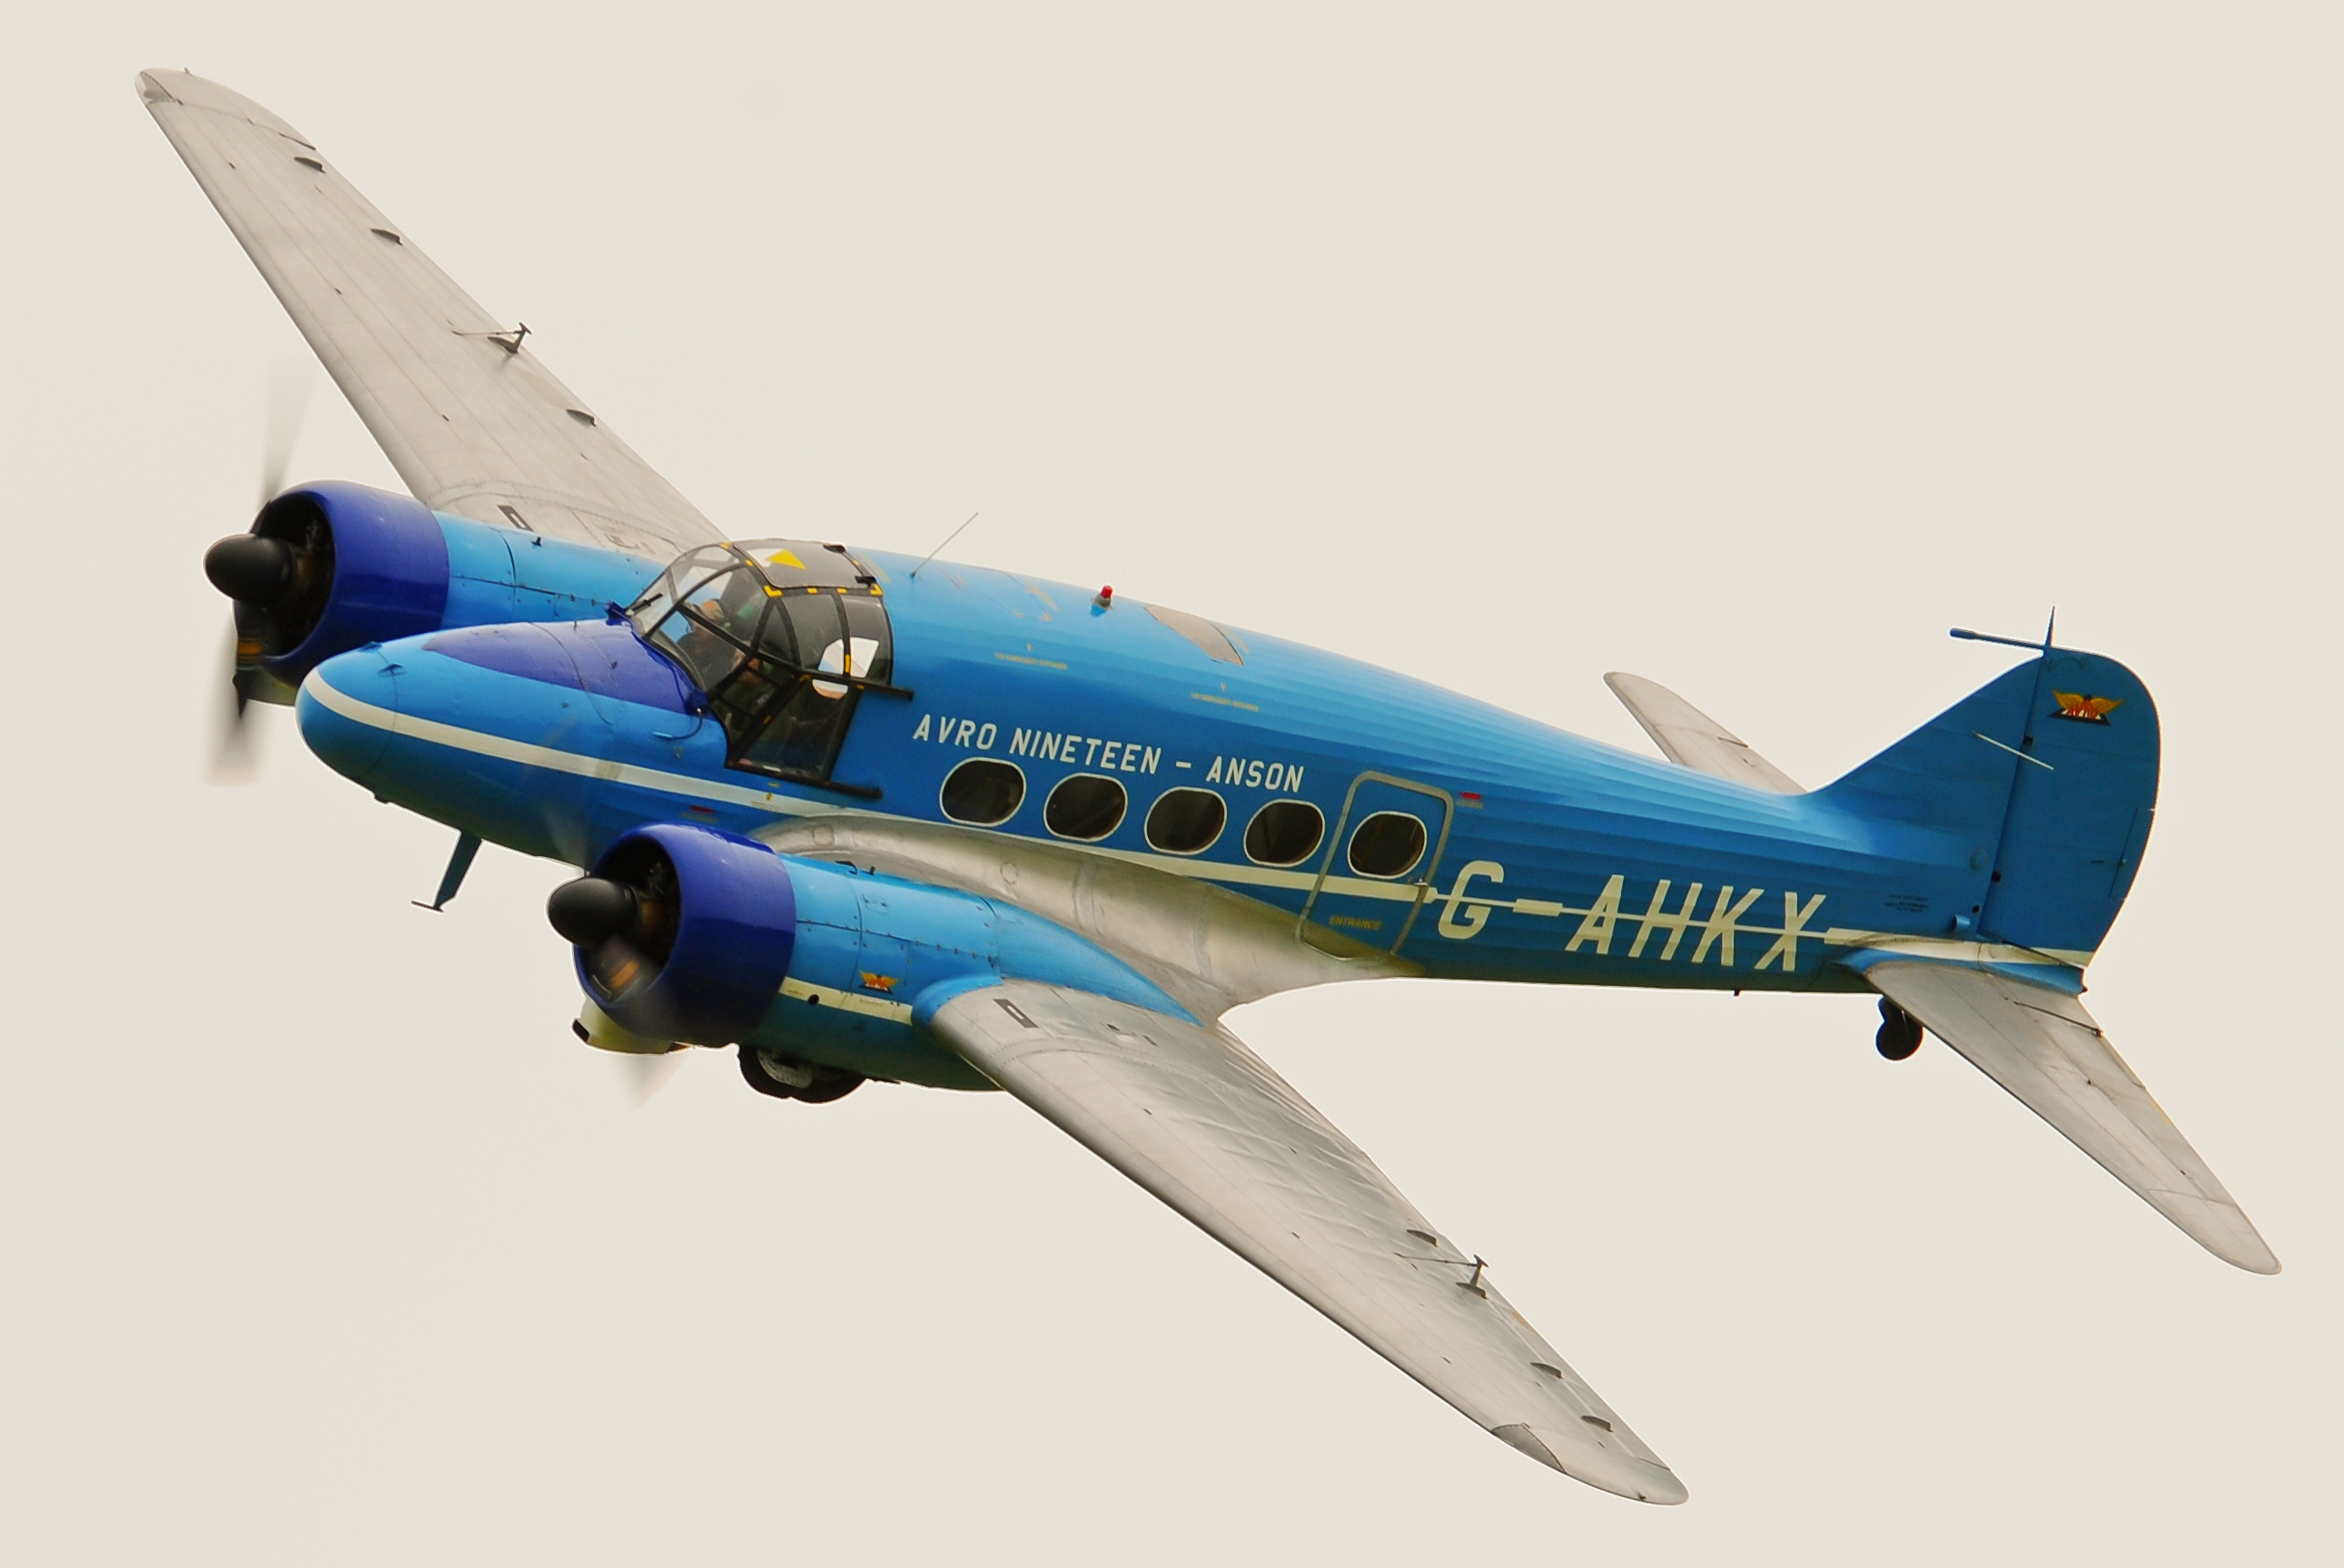 data/extra_images/2016/Avro_Anson_002.jpg